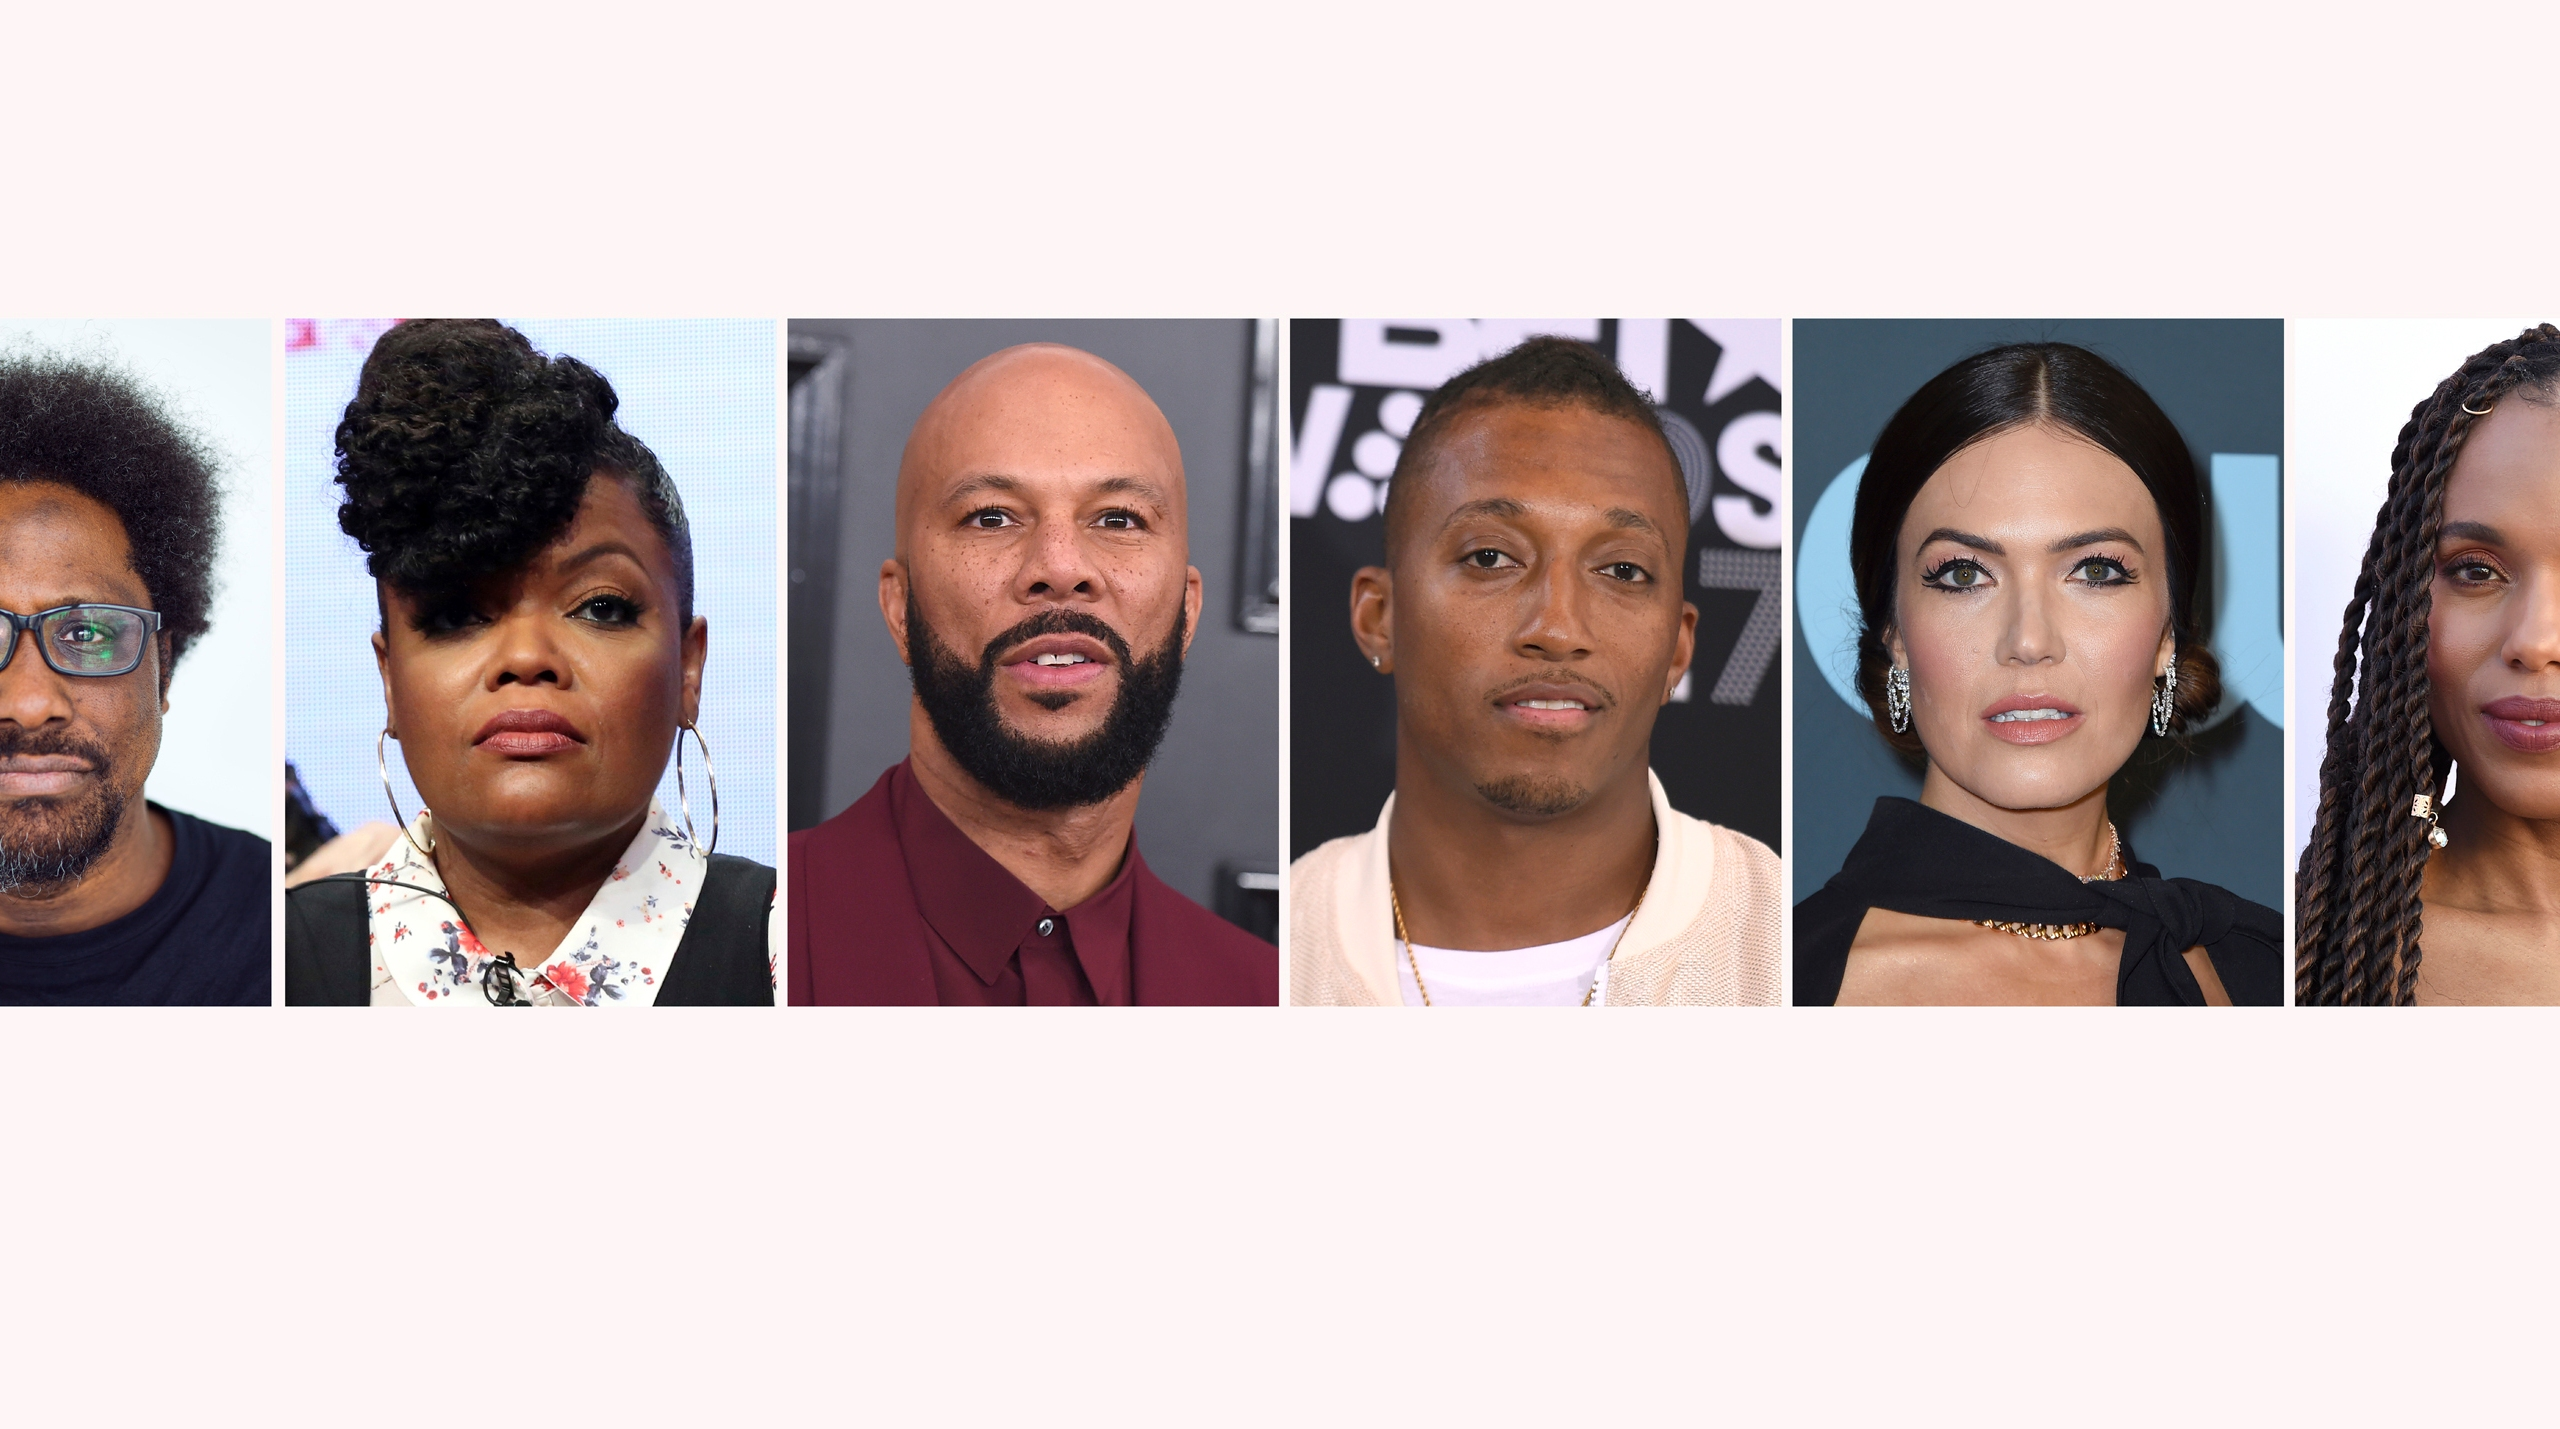 W. Kamau Bell, Yvette Nicole Brown, Common, Lecrae, Mandy Moore, Kerry Washington